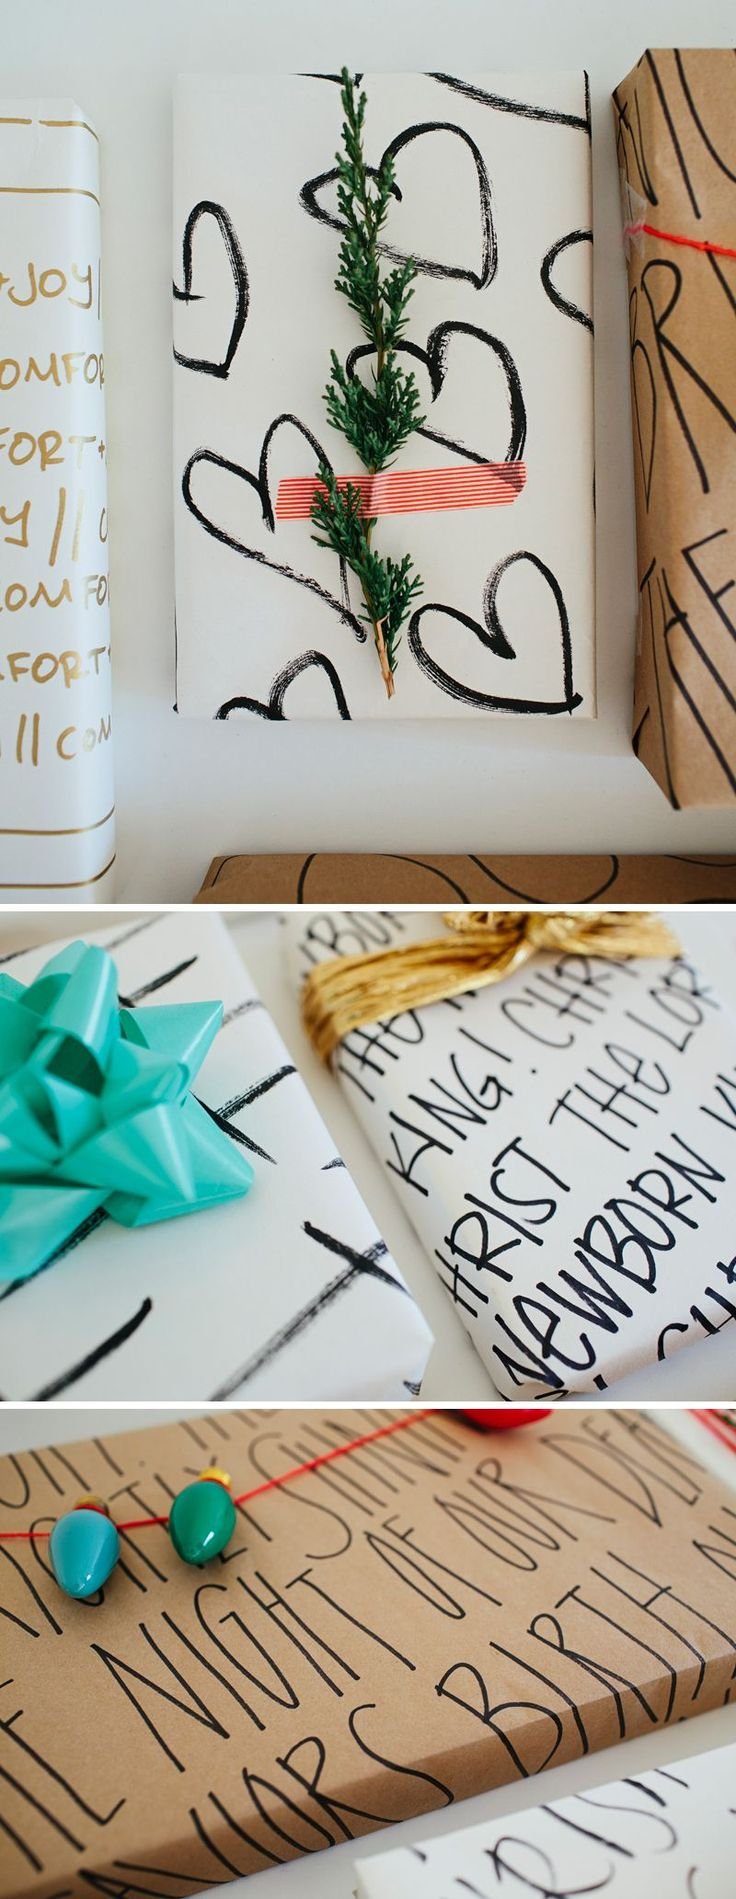 I am totally willing to admit that I'm addicted to buying wrapping paper. It's just so pretty. And shiny. And pretty. But! I think this DIY paper we made in the